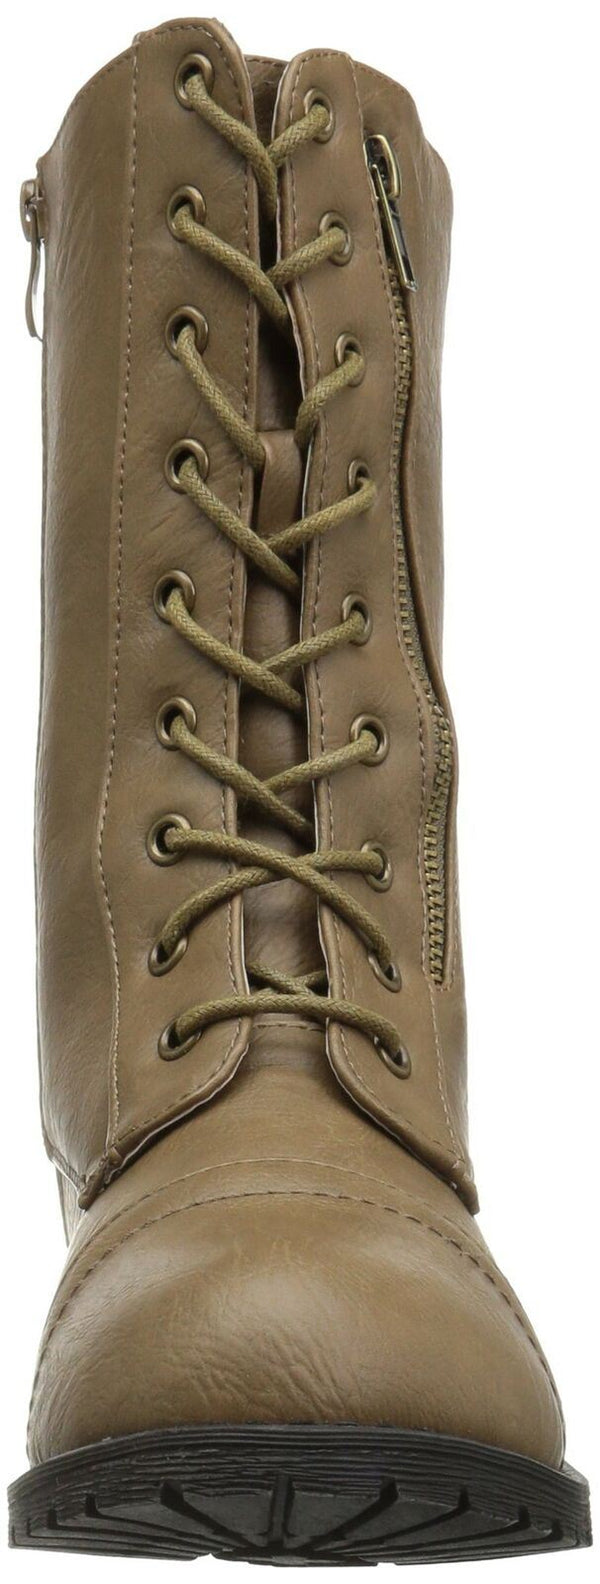 Brinley Co Women's Kiley Combat Boot, Taupe, 8 Regular US